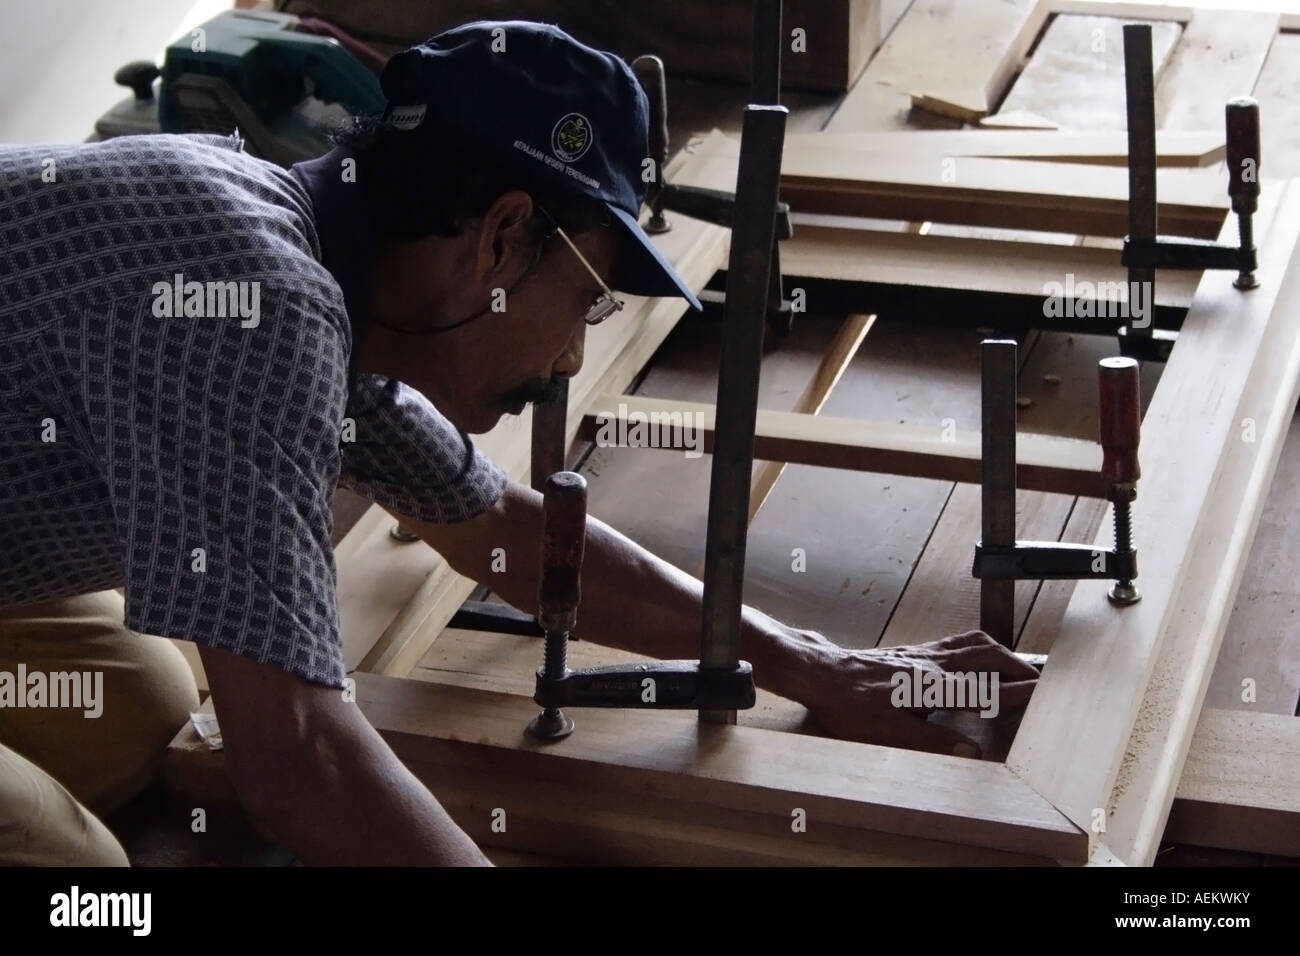 A carpenter making a wooden frame Stock Photo: 13709822 - Alamy